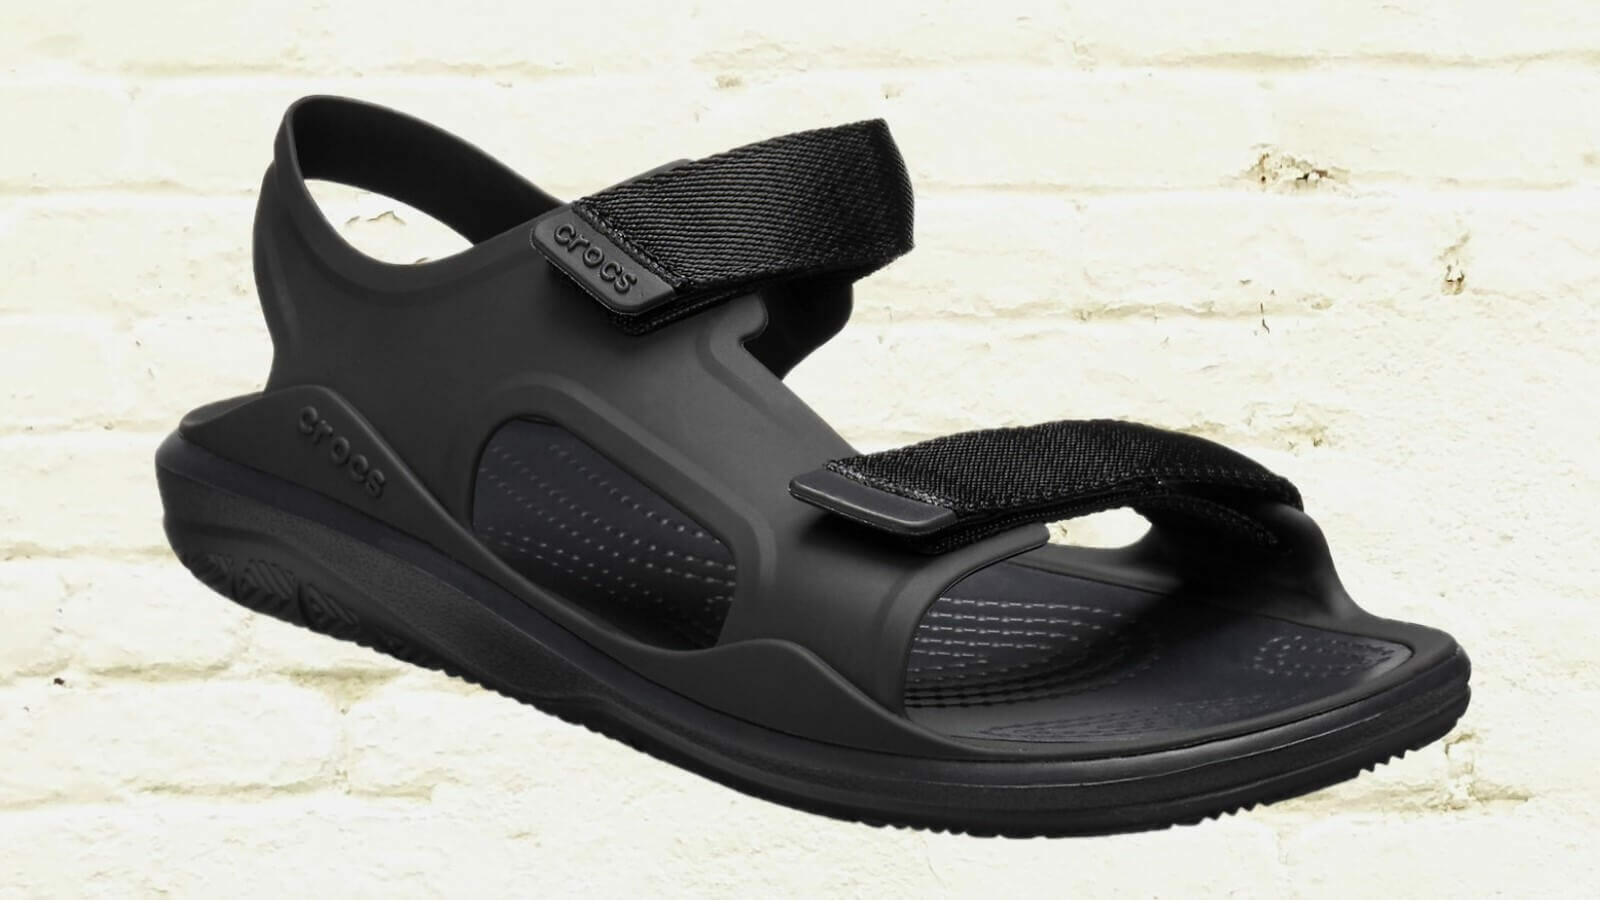 Crocs swiftwater expedition sandal with hard plastic foot protection